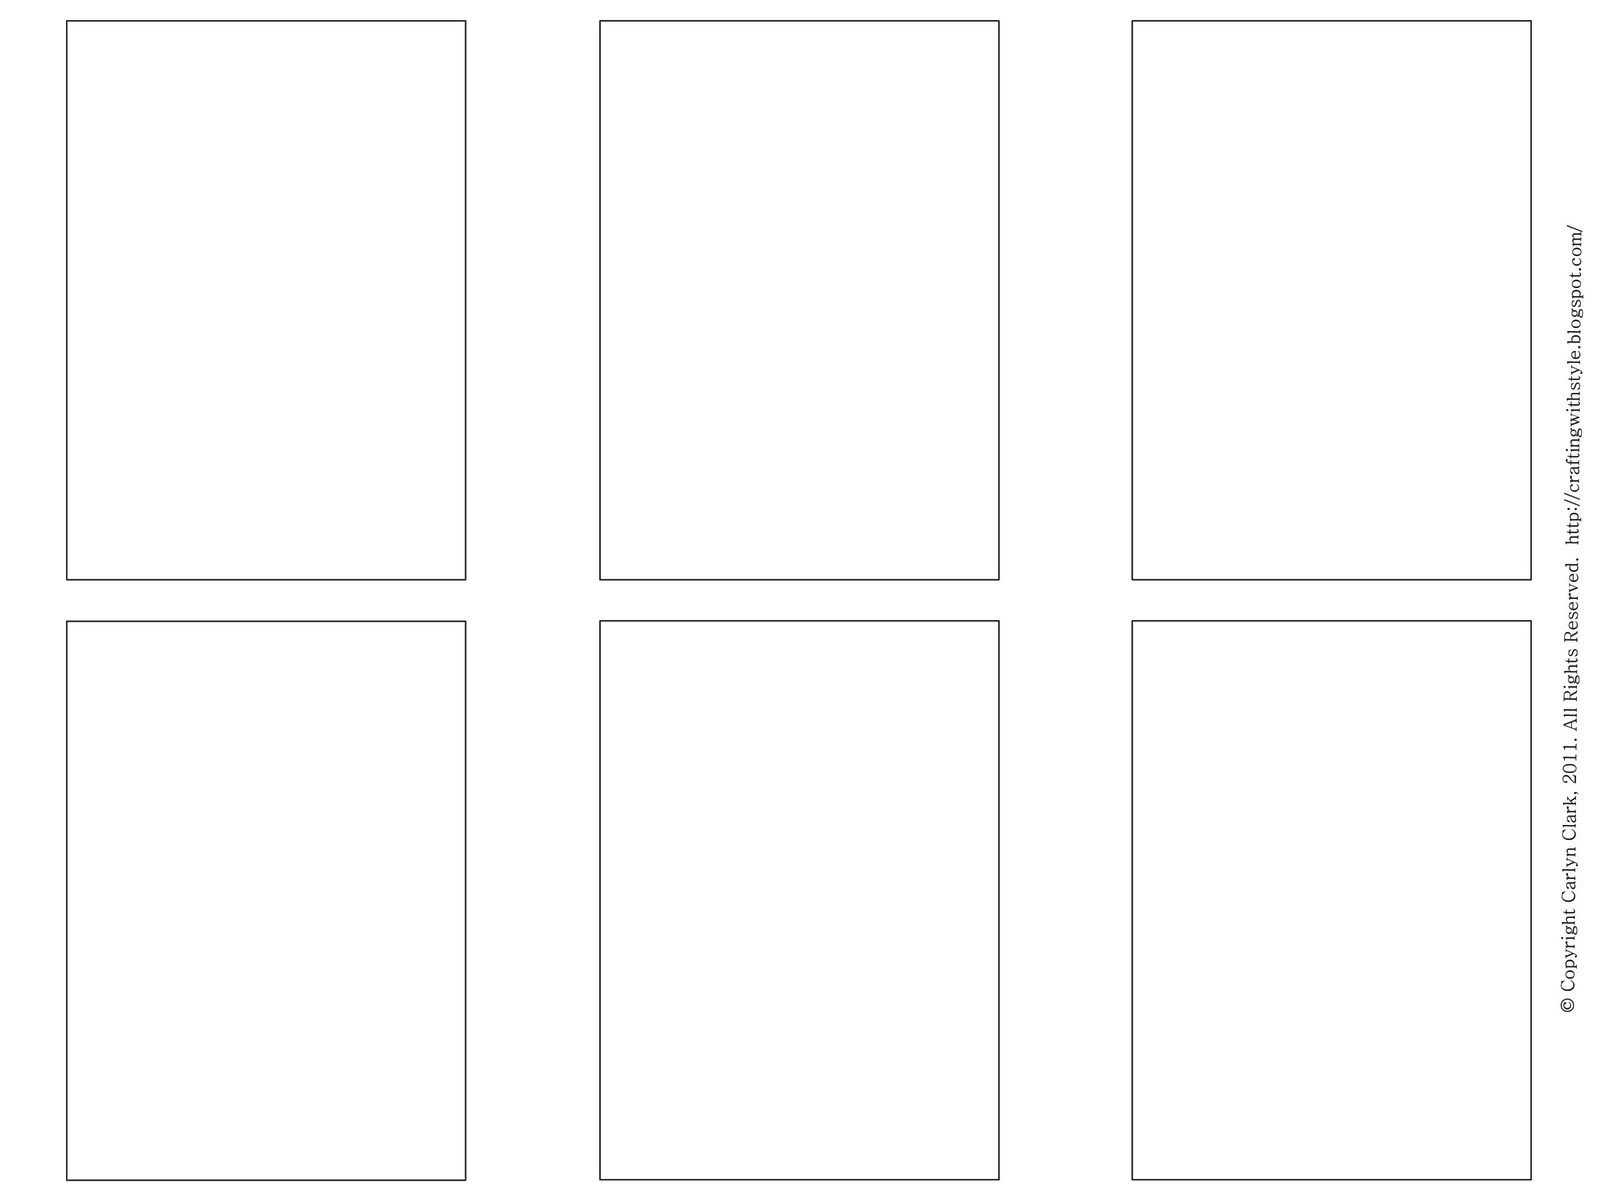 30 Free Trading Card Template Download | Simple Template Design intended for Trading Cards Templates Free Download